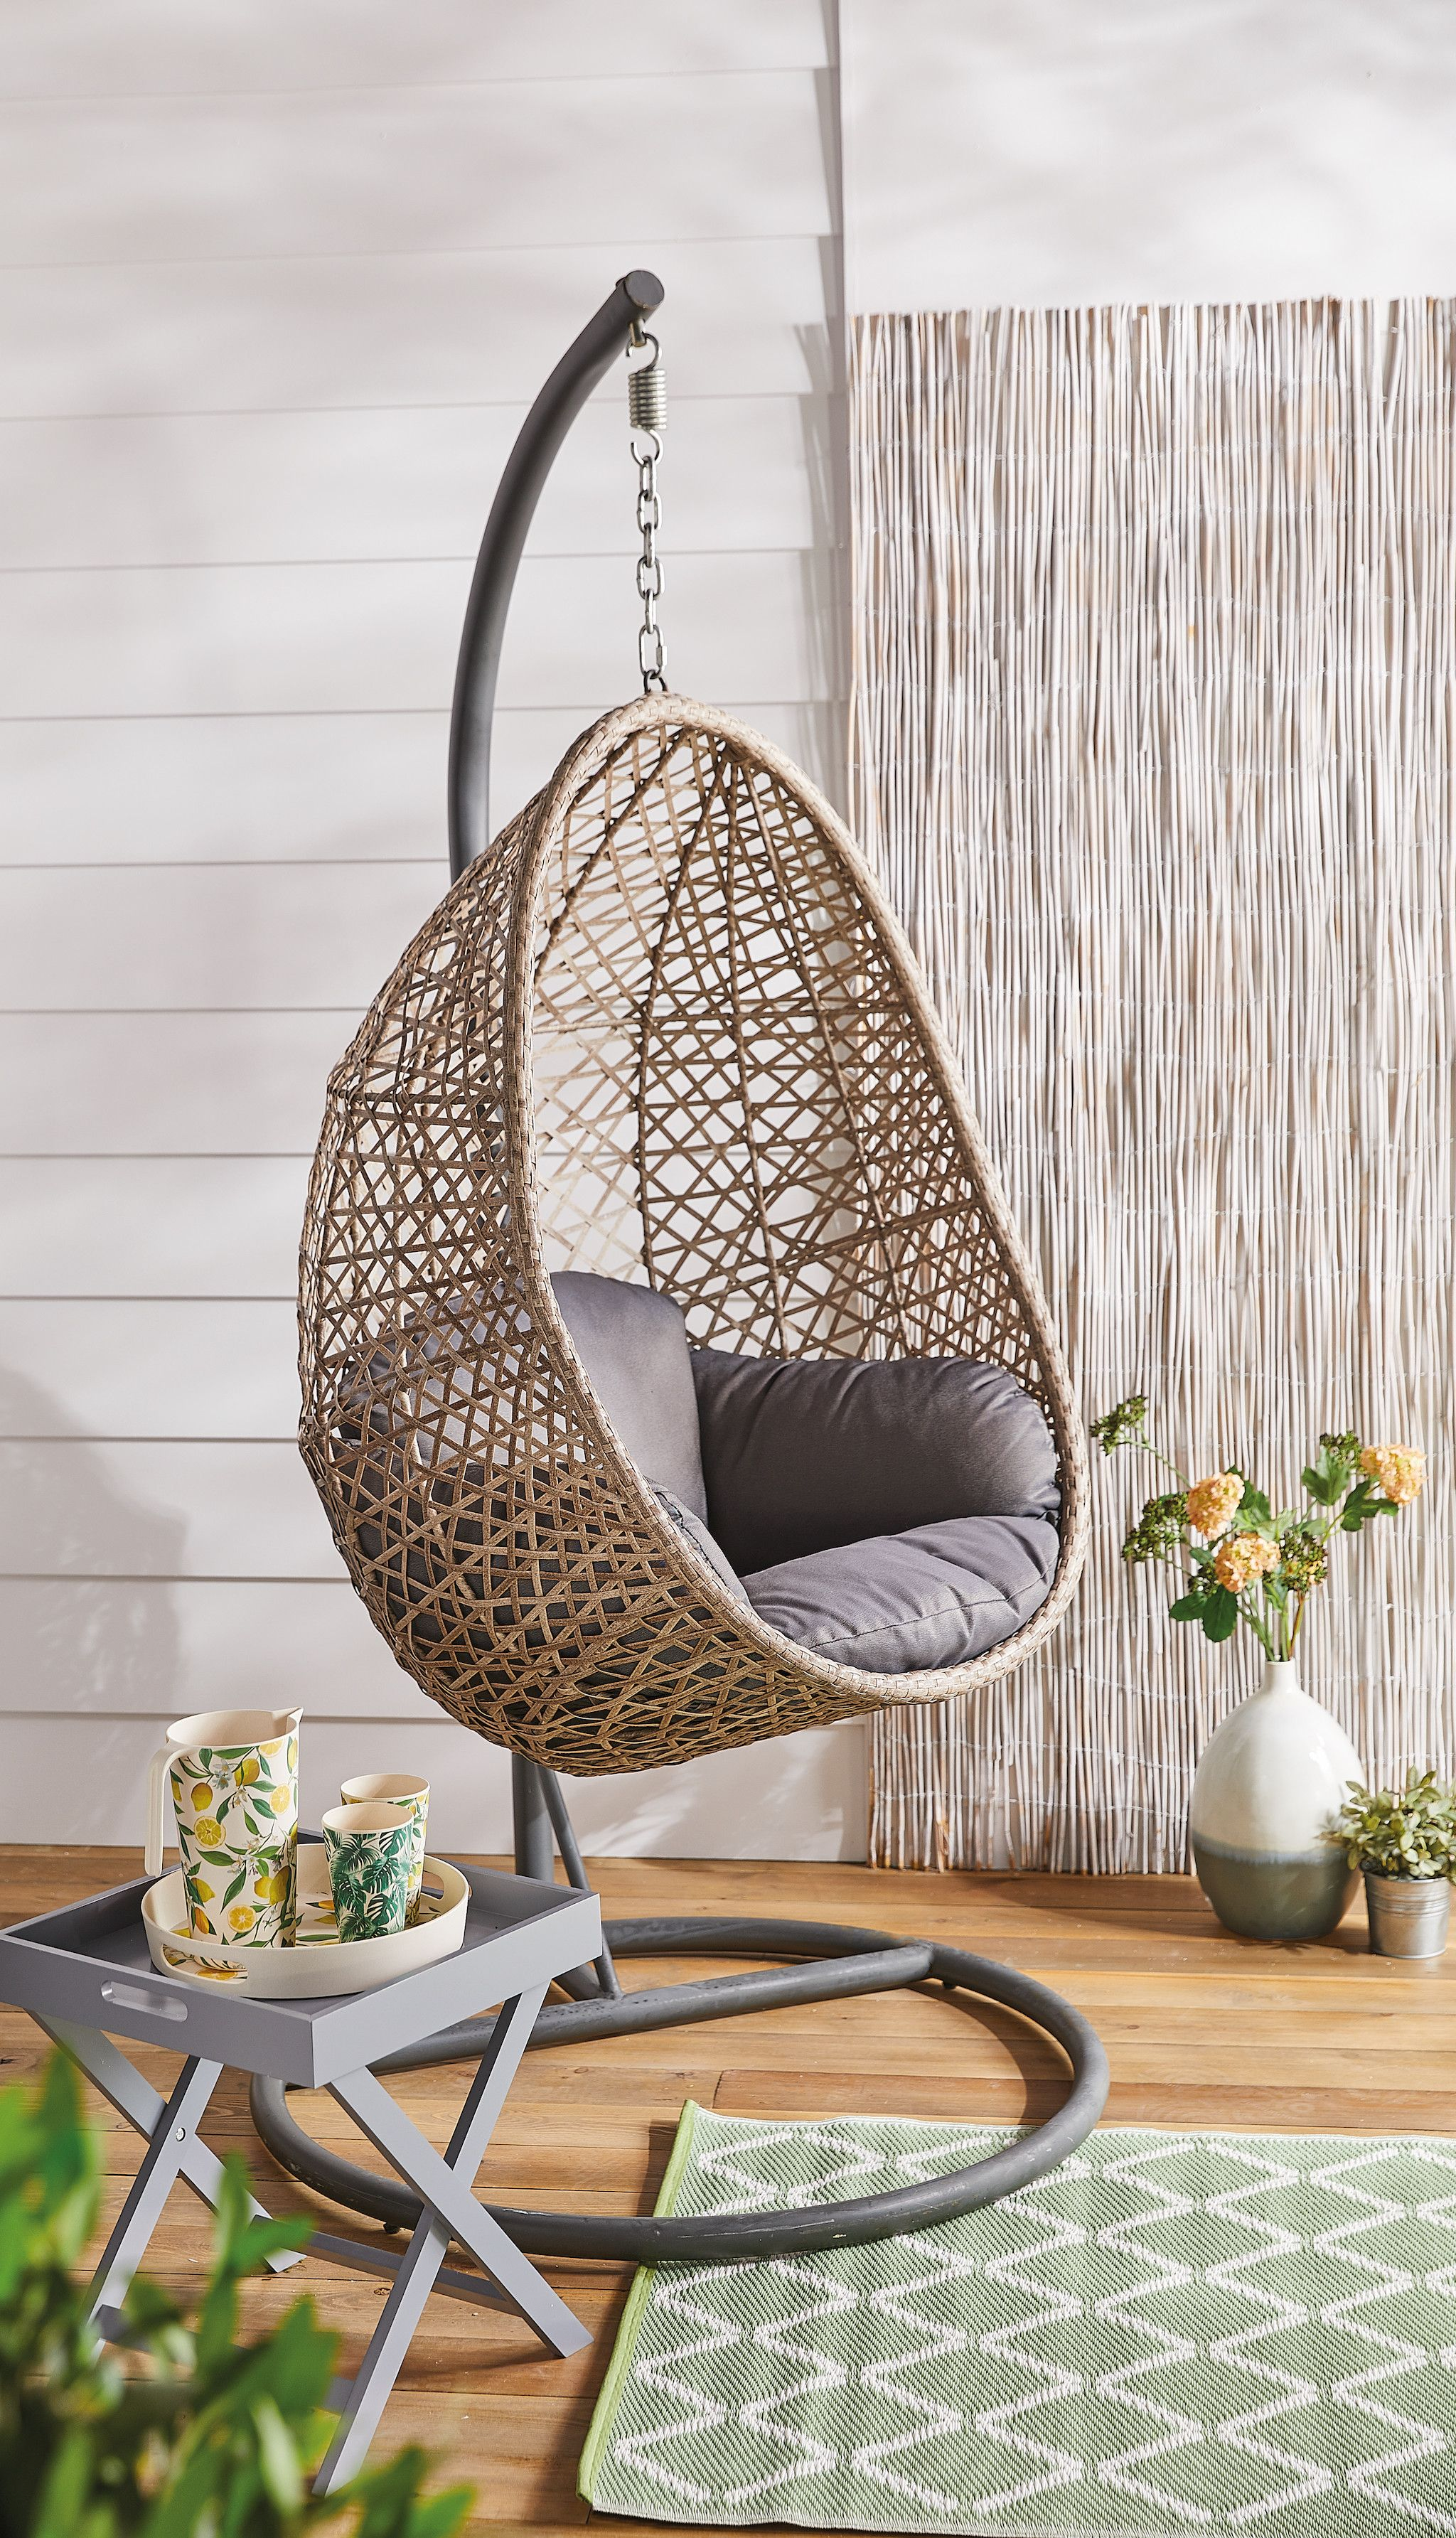 Double Egg Chair New Aldi Garden Furniture Is Largest Ever Outdoor Range Aldi